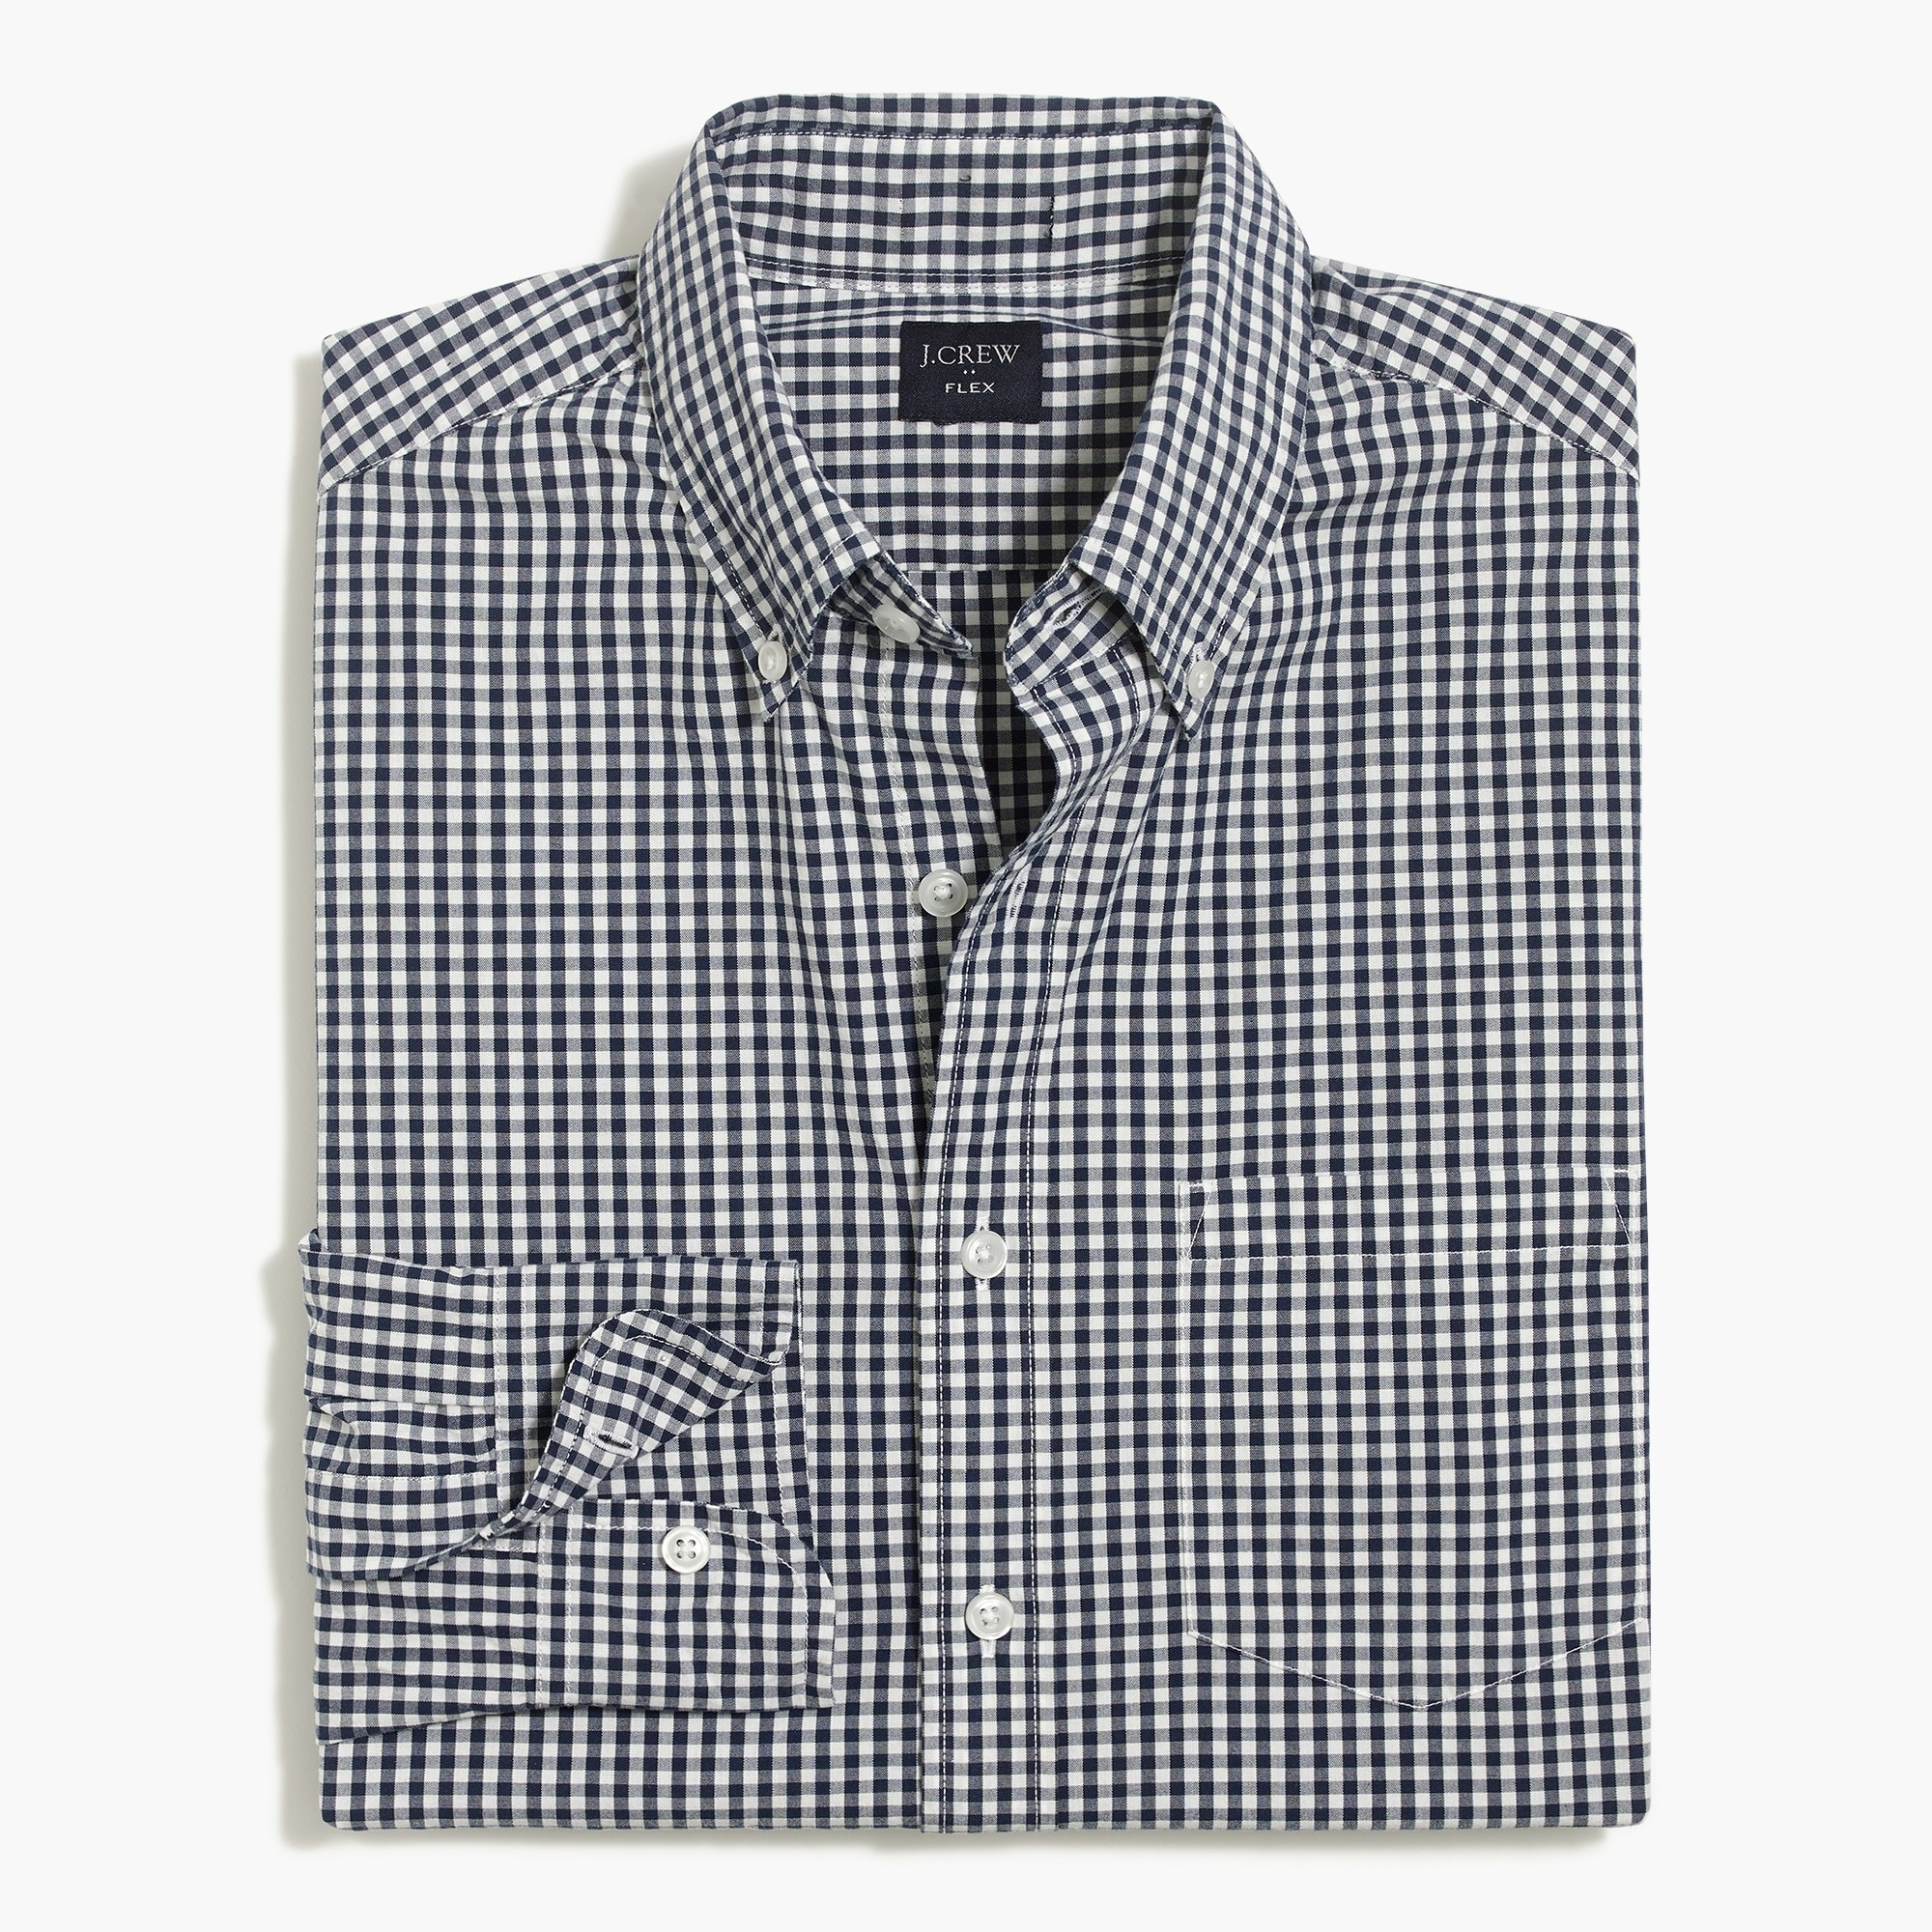 factory mens Tall flex washed shirt in small gingham